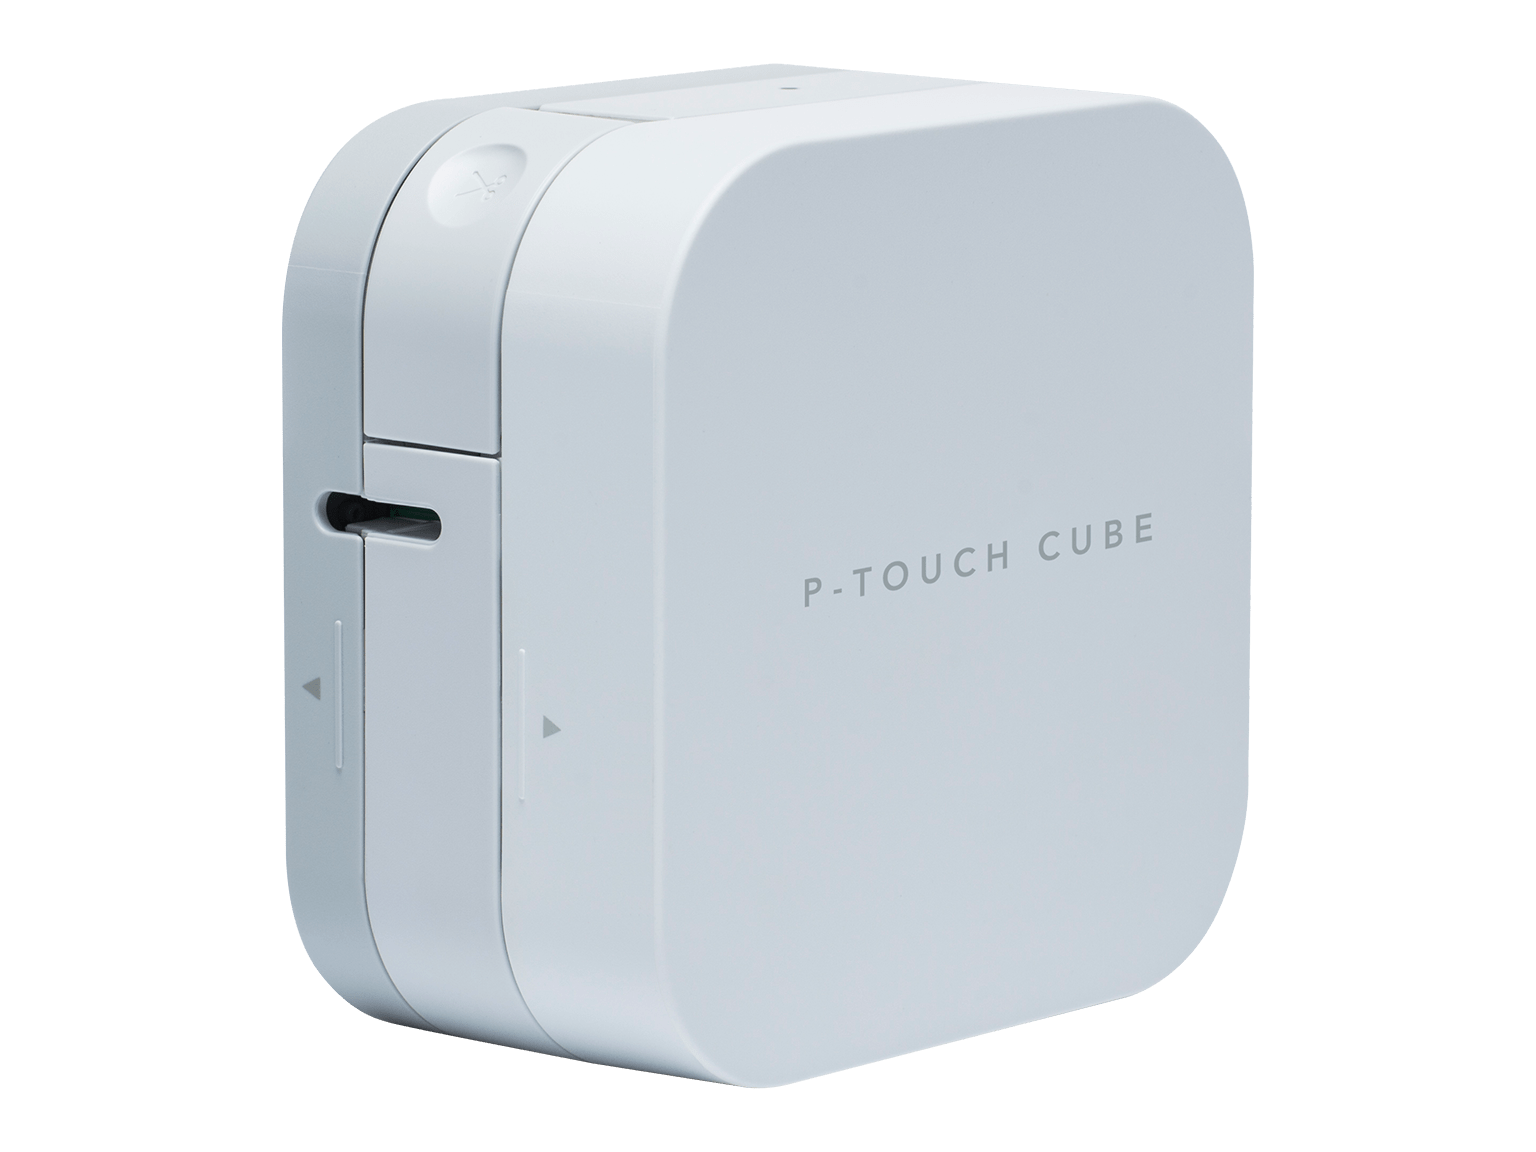 Brother P-touch CUBE nyt -33 % kampanjahintaan!